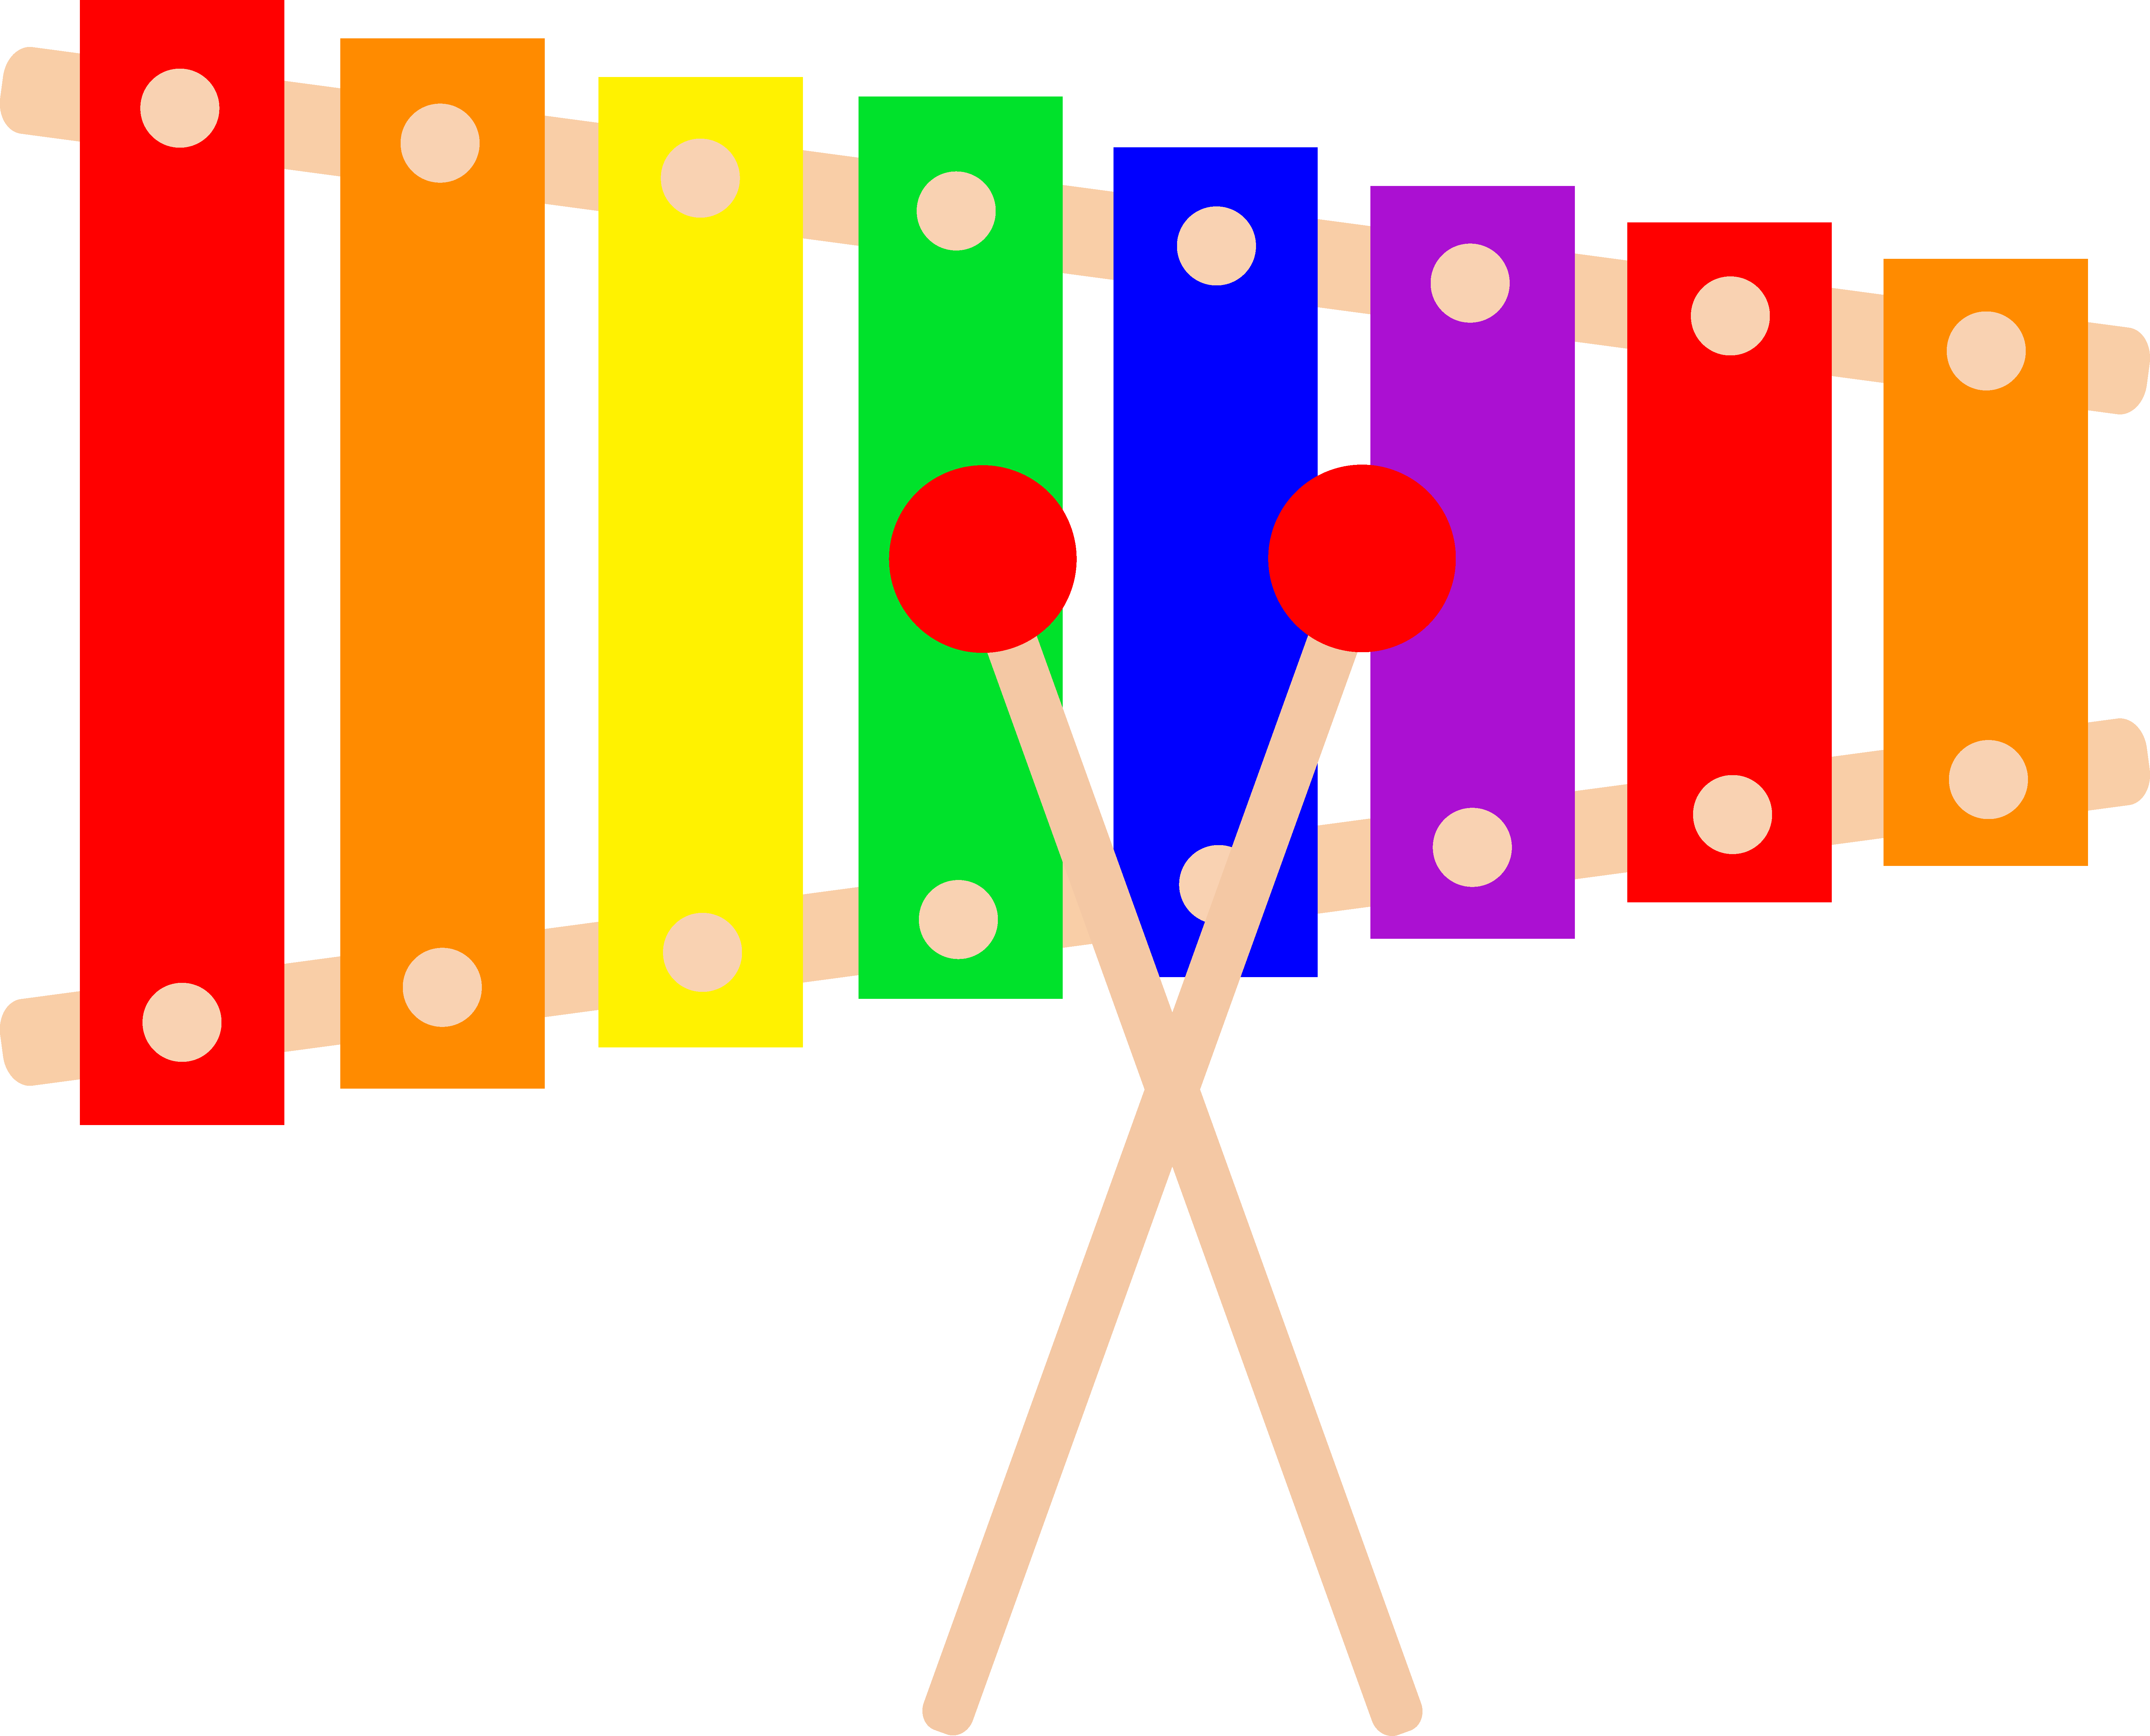 Colorful Xylophone Design Free Clip - Xylophone PNG